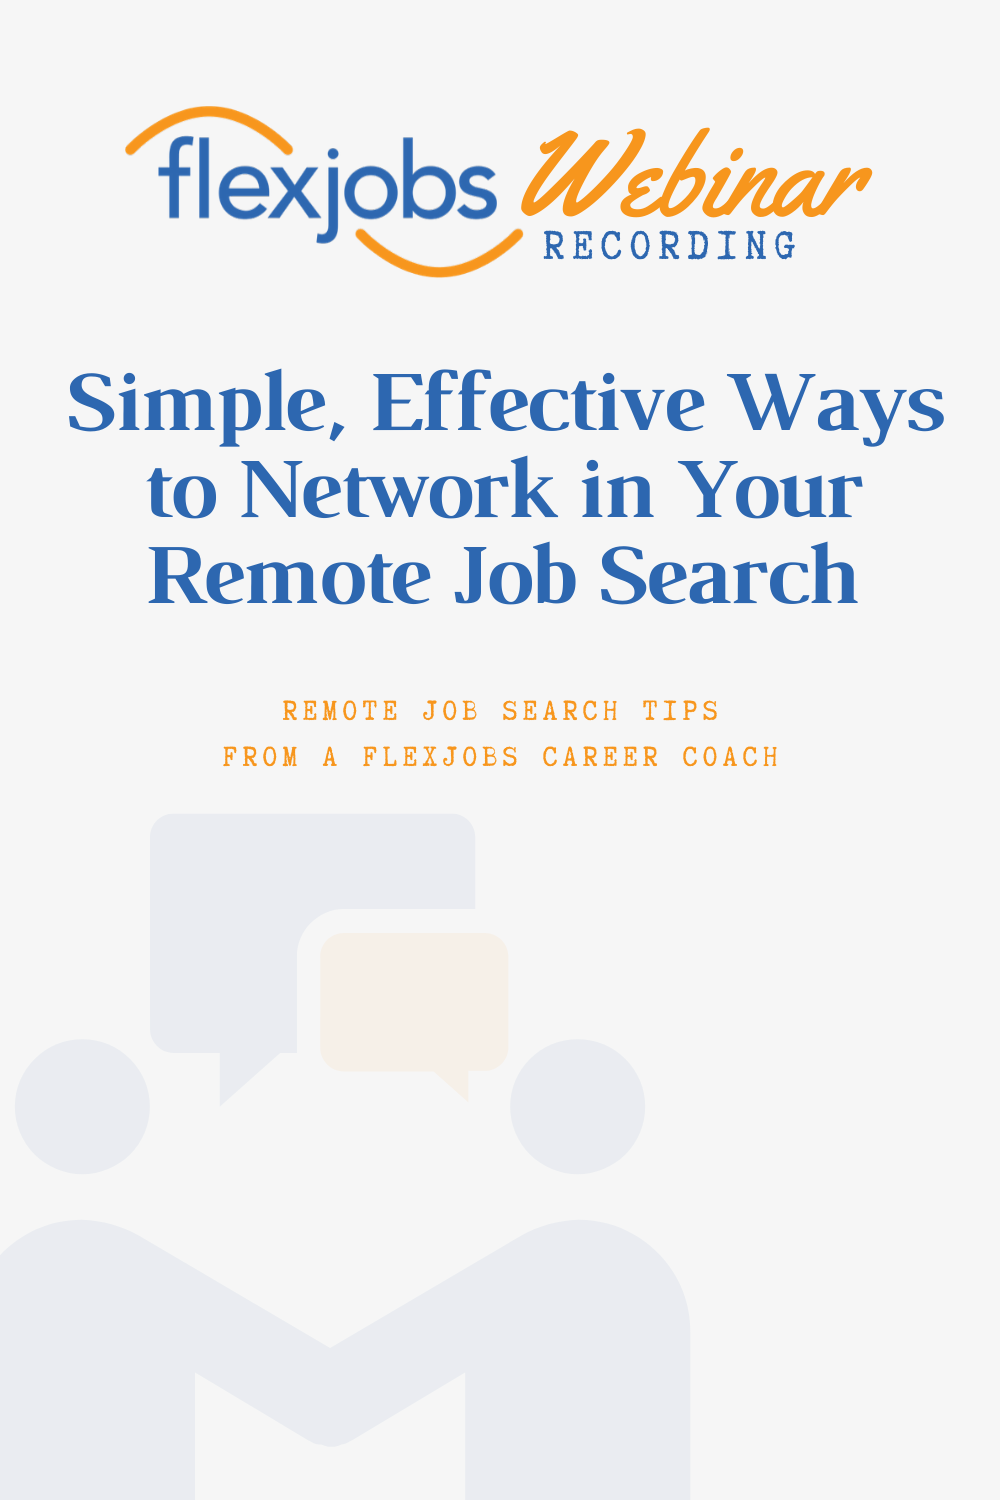 Webinar Recording Network During Your Remote Job Search